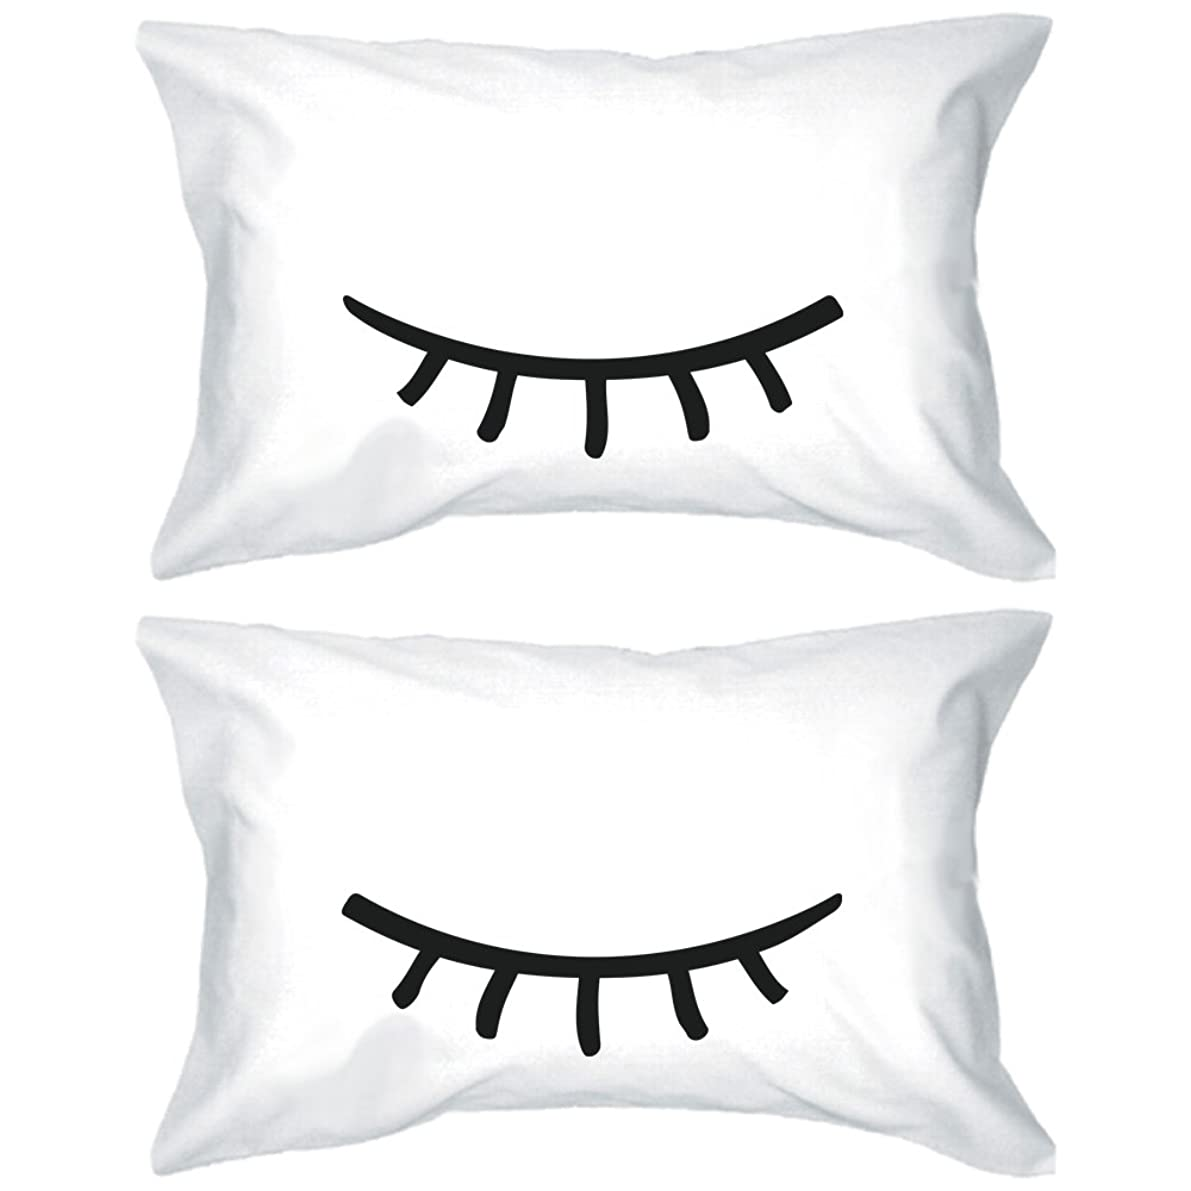 Cute Pillowcases 300-Thread-Count Standard Size 21 x 30 - Sleeping Eyelashes